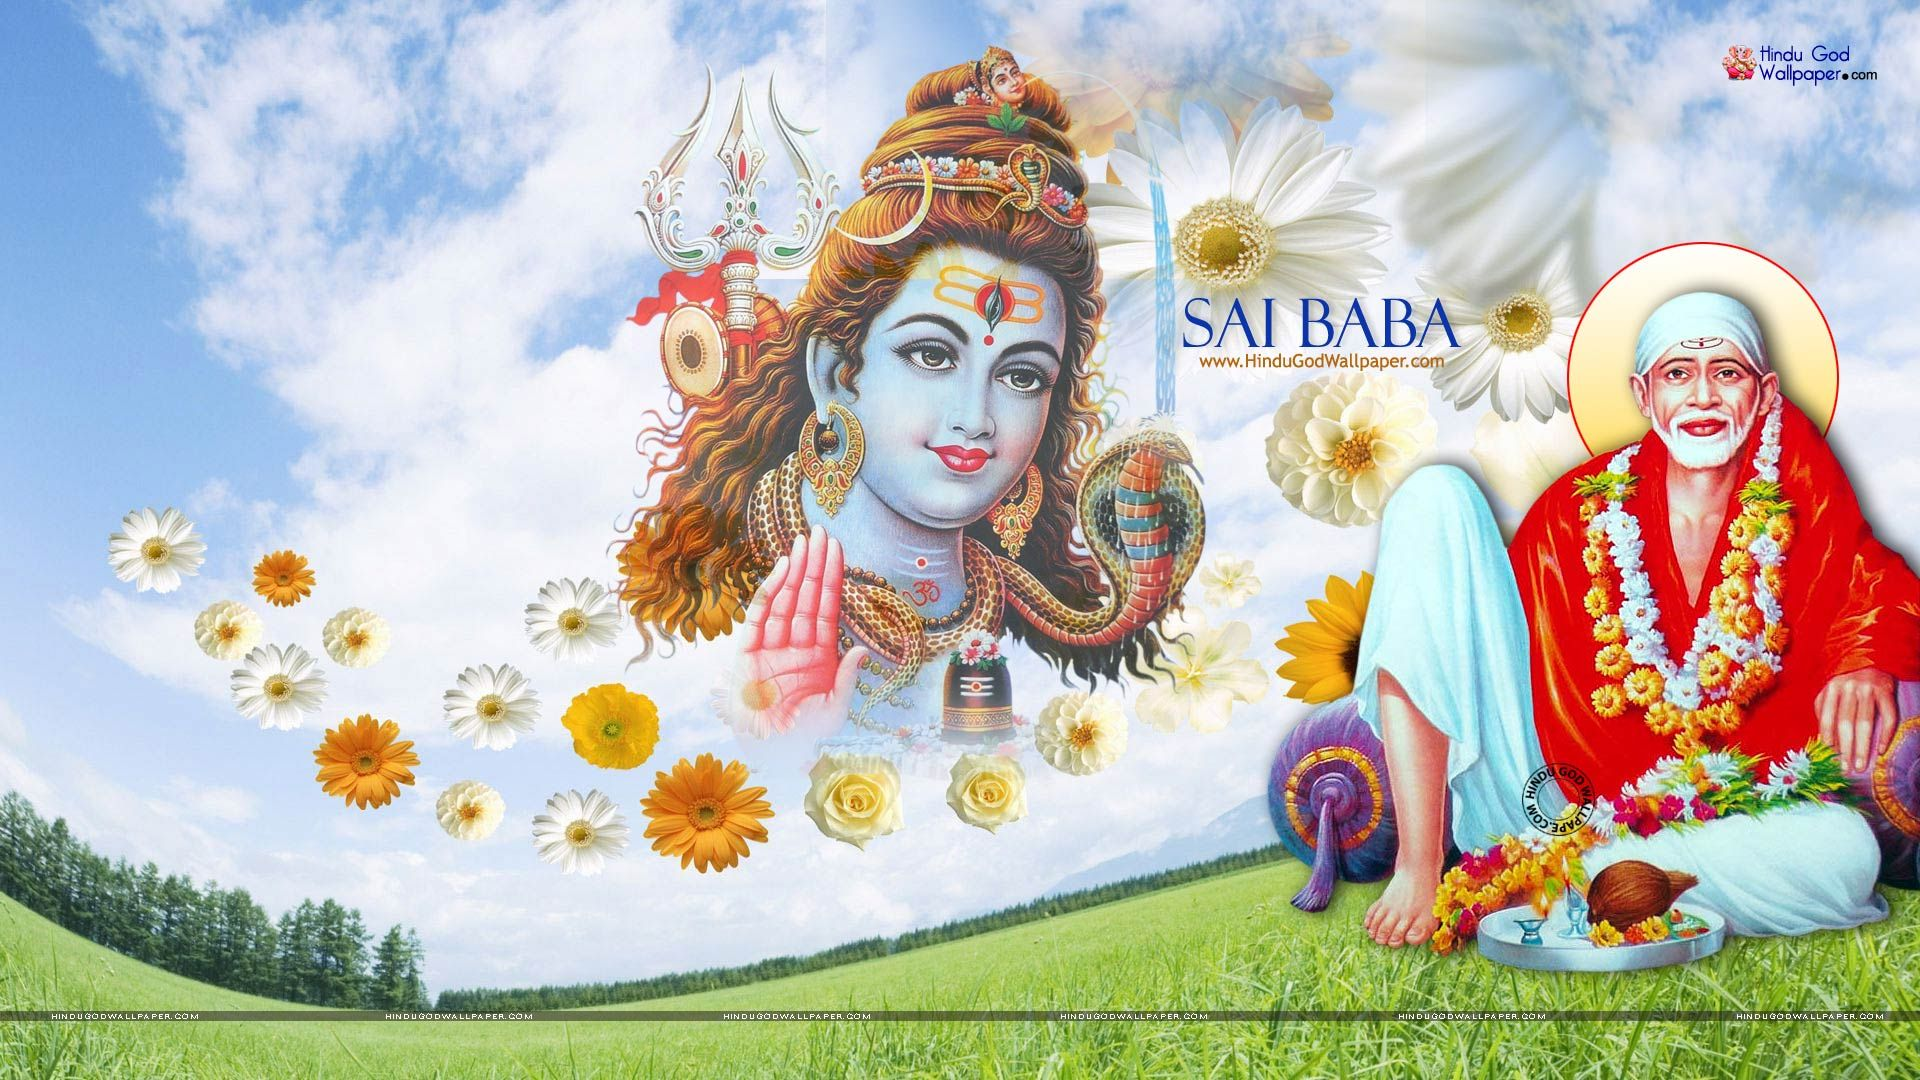 Sai Baba Hd Wallpaper 1080p Full Size Free Download With Images